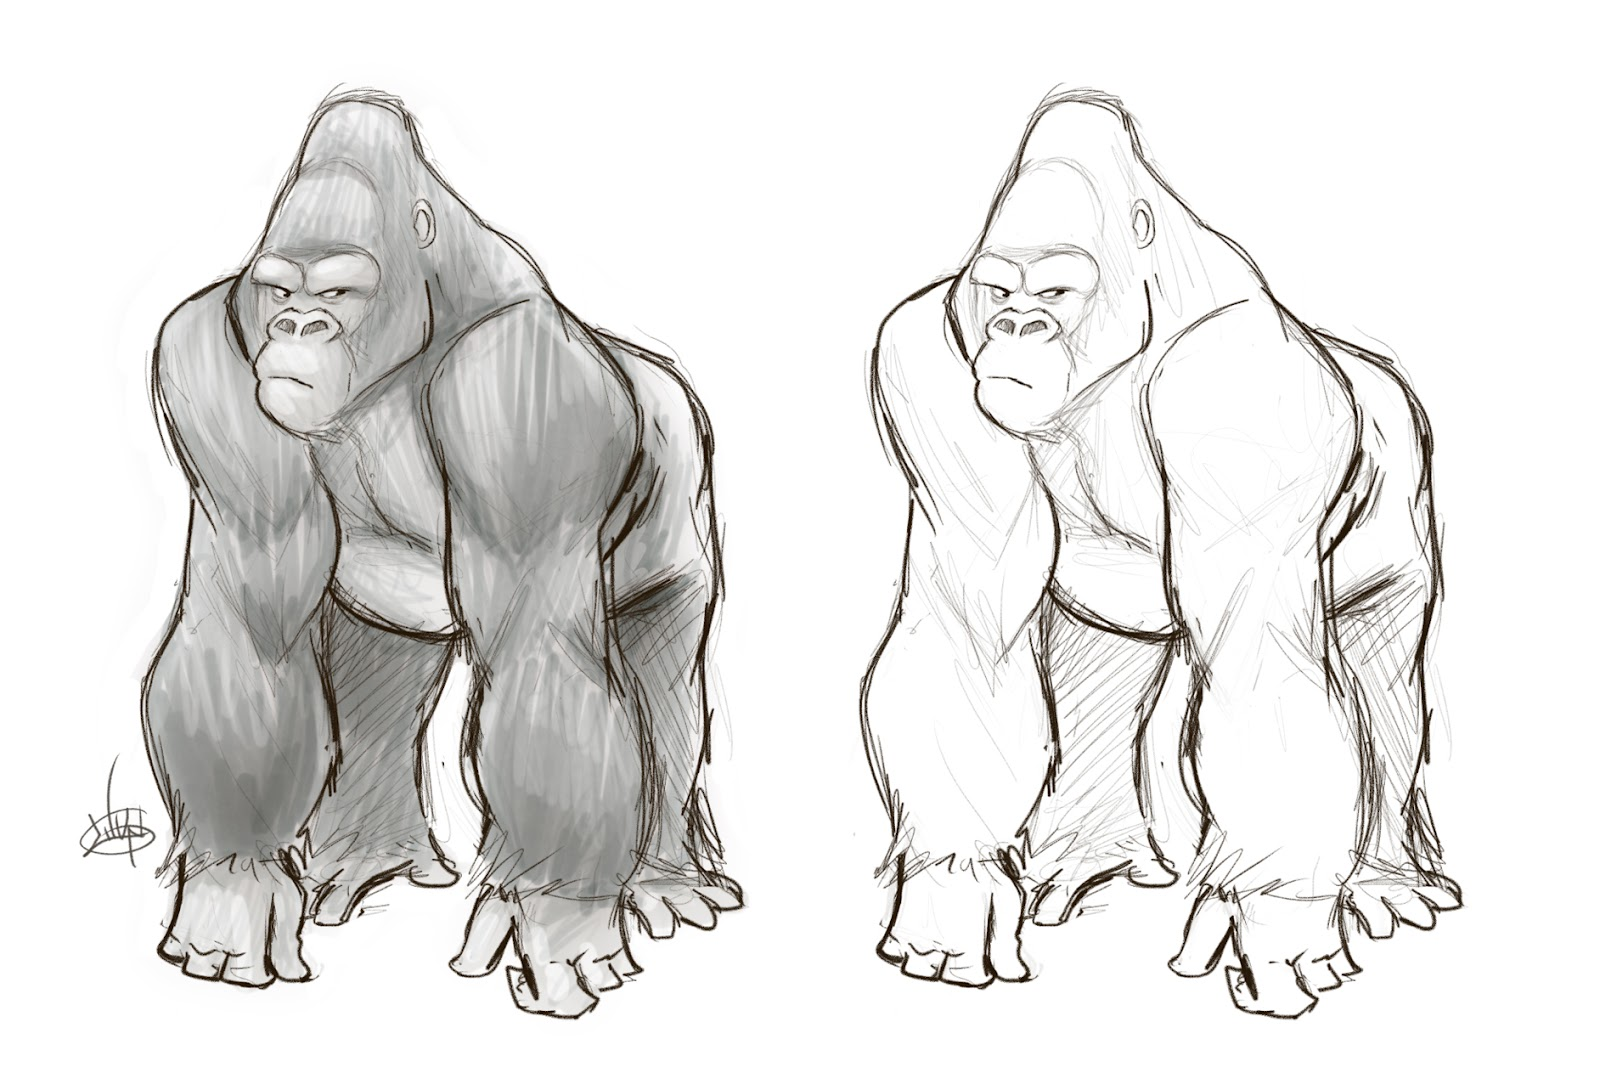 how to draw a gorilla face step by step